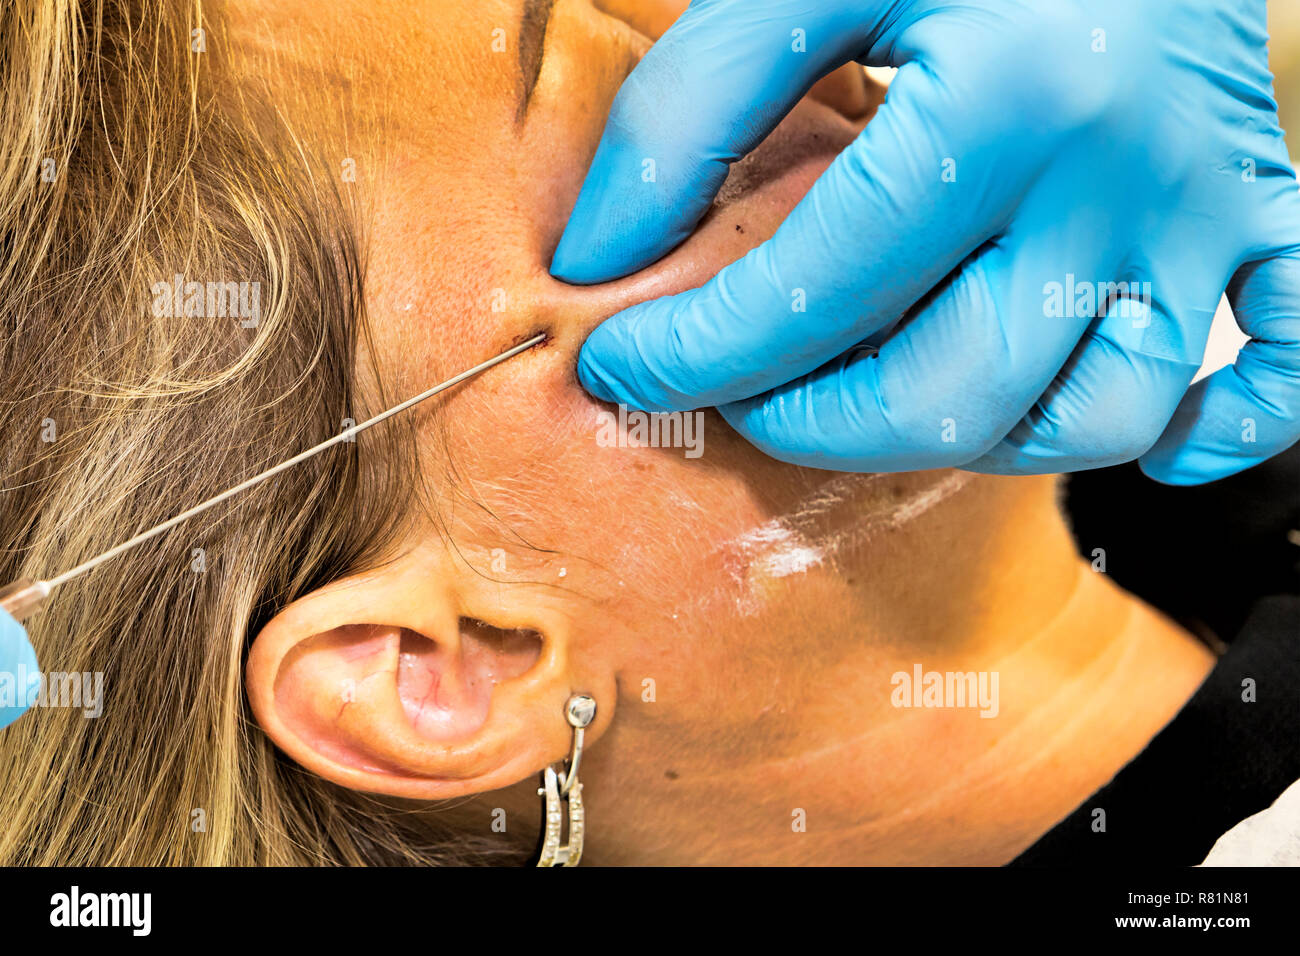 Dermatologist performs anti-age procedure using PDO thread on middle-aged woman patient - selective focus - Stock Image